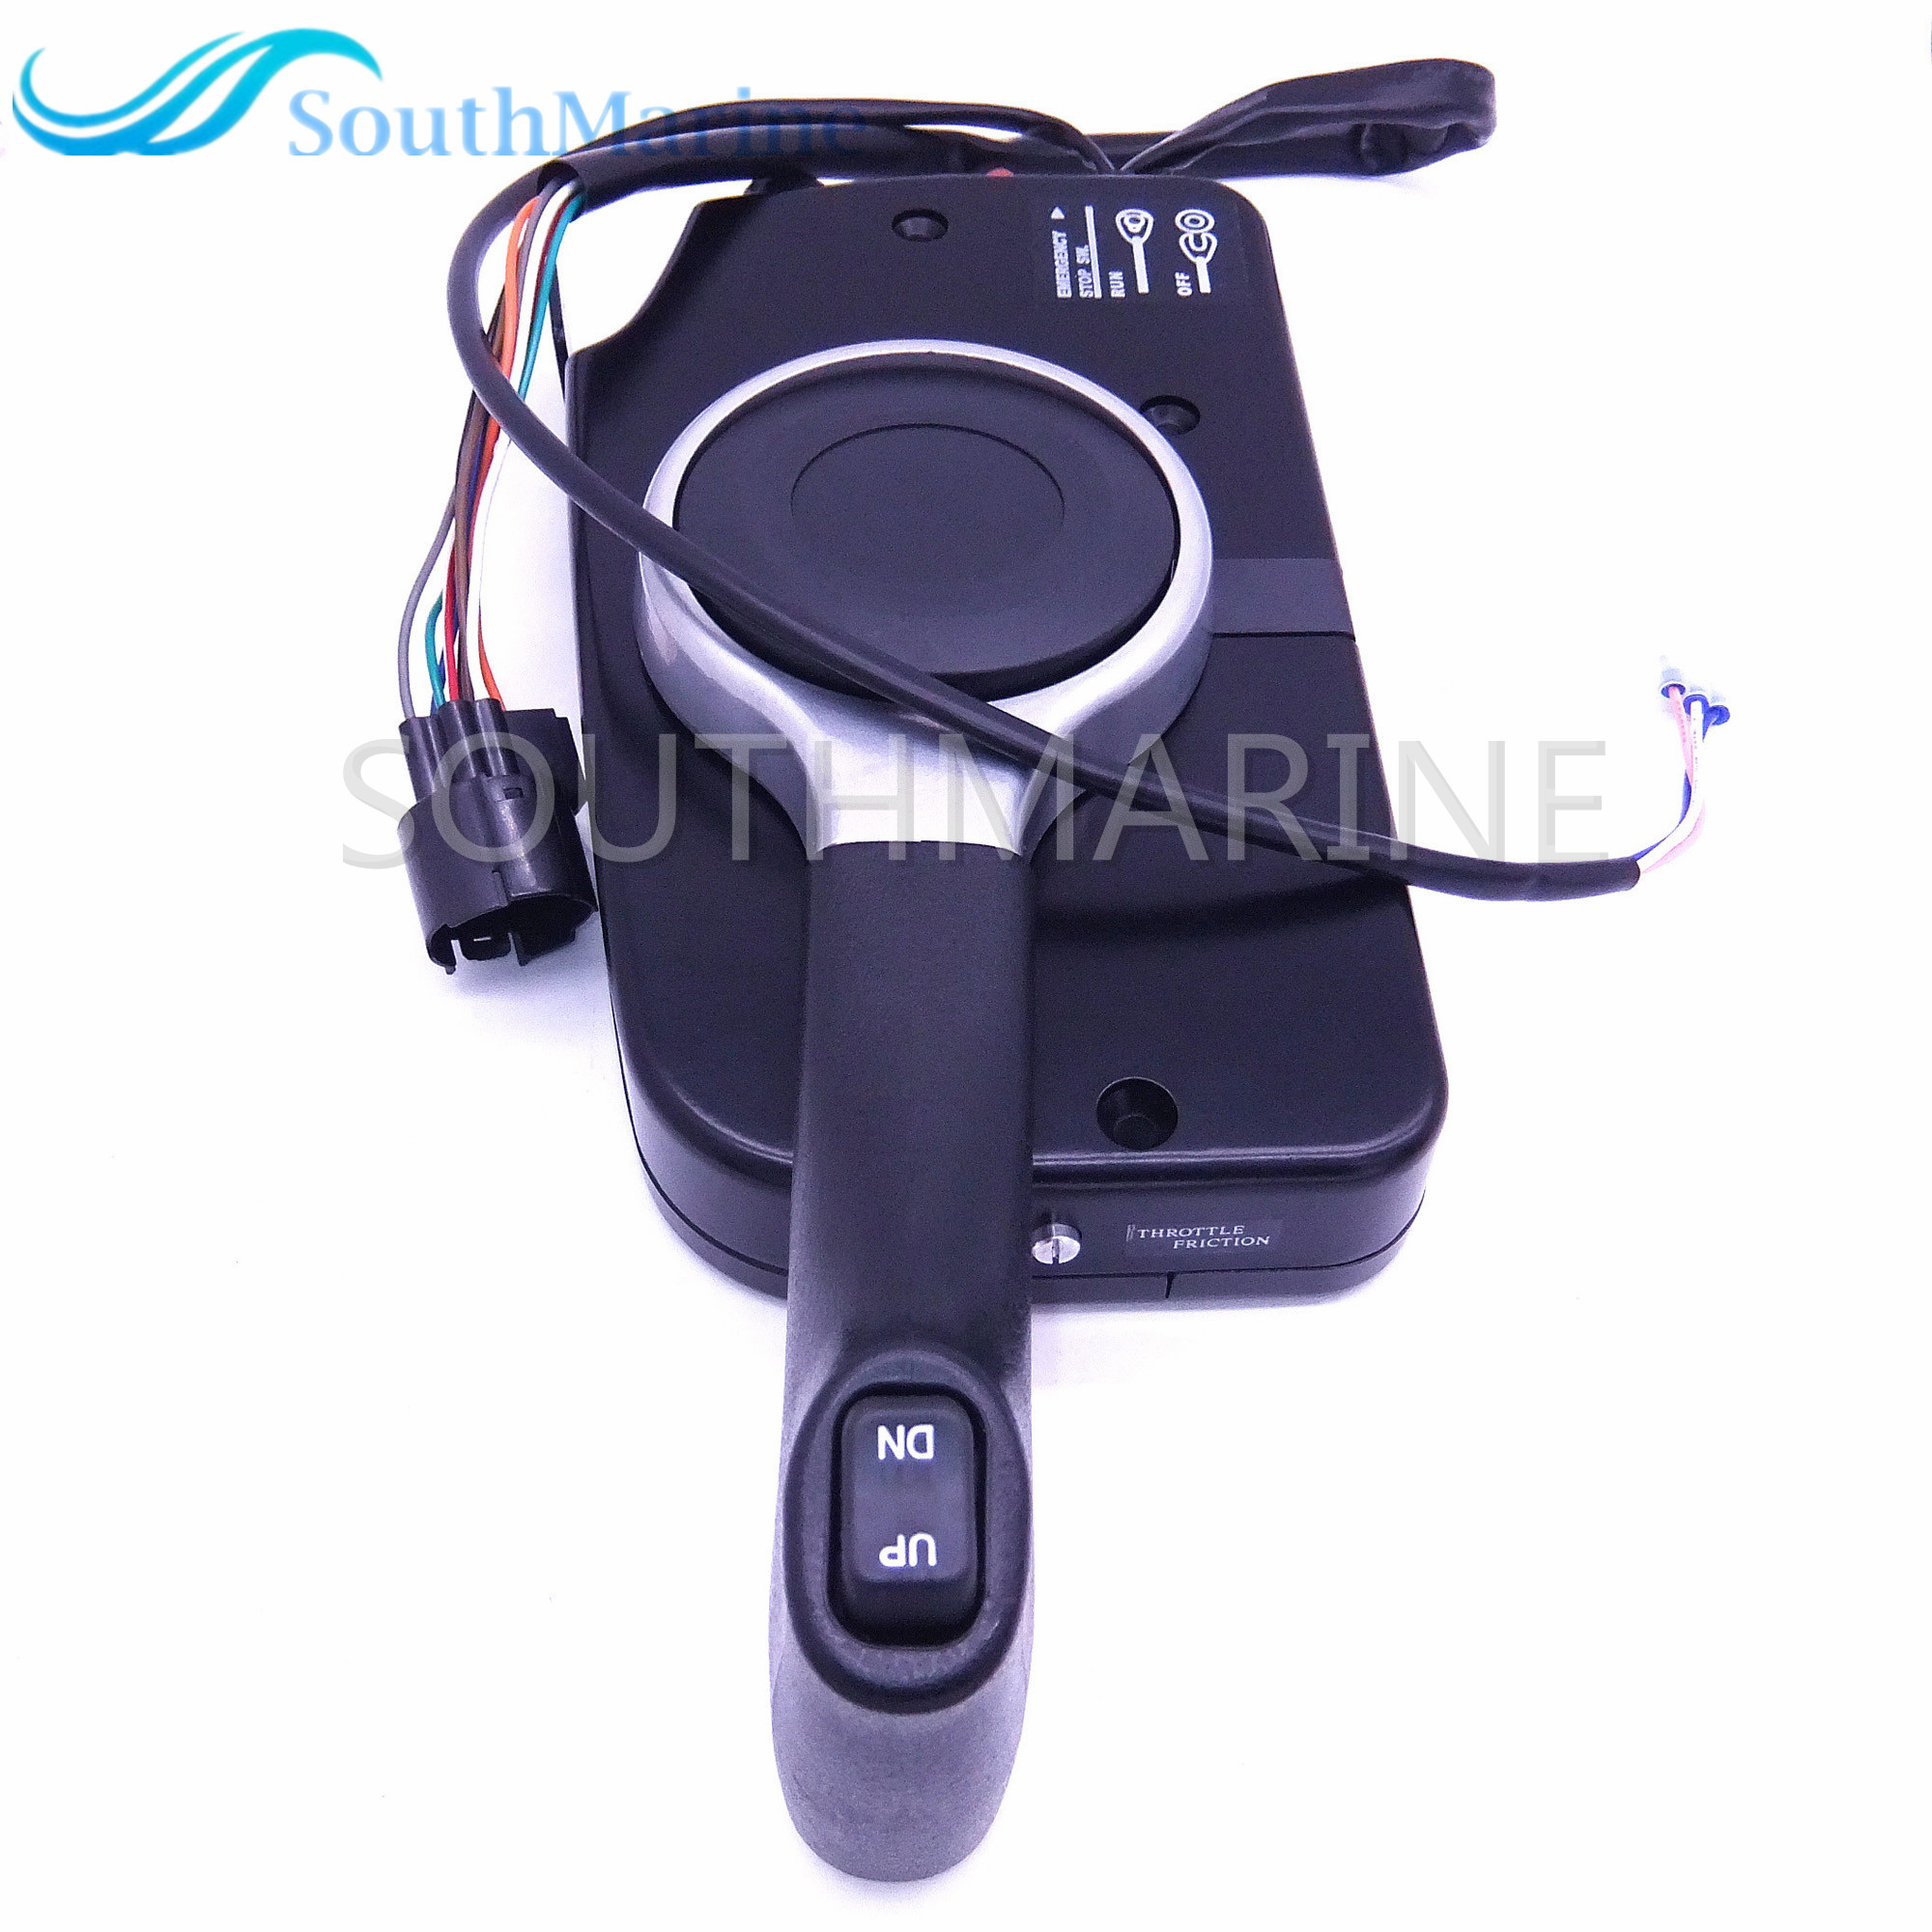 67200 93J50 Side Remote Control Box for Suzuki Outboard Motors with PT Push 67000 93J50 right